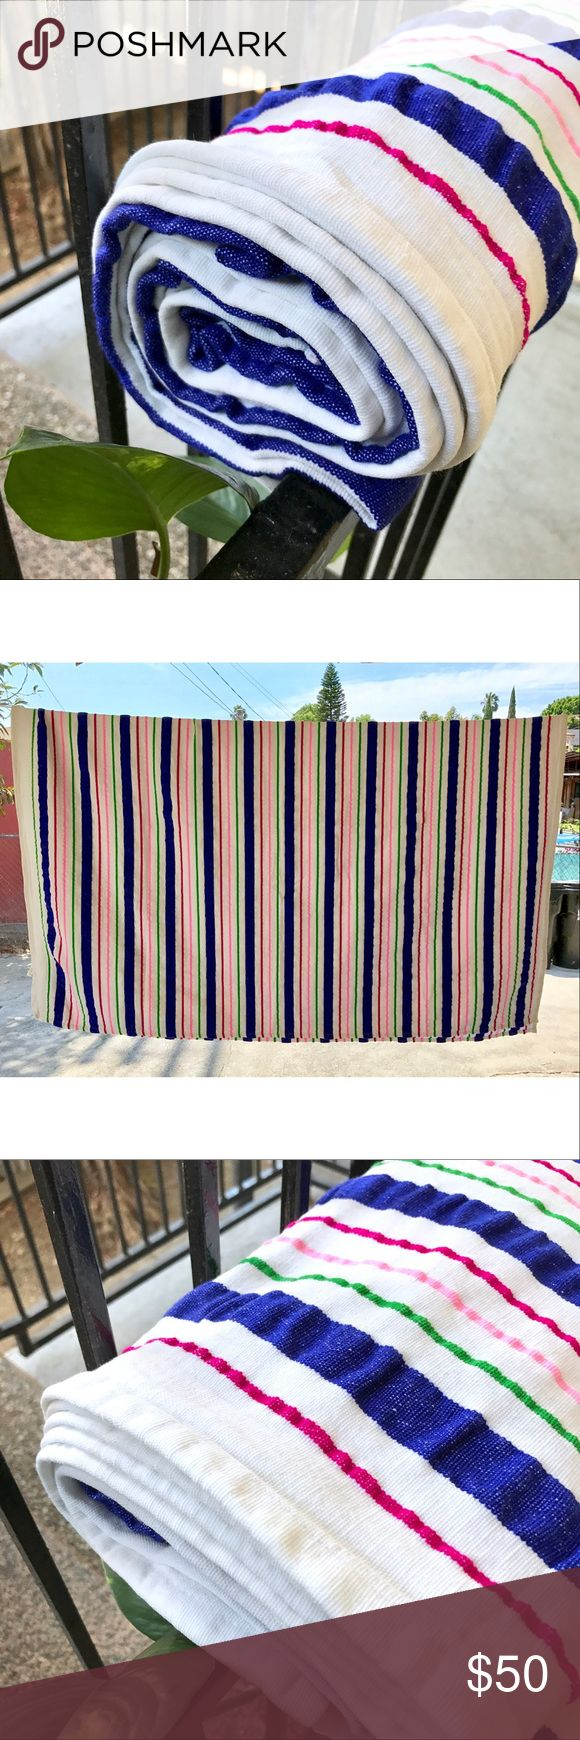 "Handmade Ethnic Bright Stripes Beach Towel/Blanket Bought in Guatemala, it's brand new! This beautiful traditional blanket is a soft towel like slightly thick, texture material • Measurements: Length: 71"" x Width: 62""   Tags: Coachella, hipster, hippie, vintage, retro, boho, trendy, 60s, 70s, 80s, 1990s, yoga, summer, winter essentials, mexican, mexico, indian, mandala, picnic, camping Ketzali Accessories"